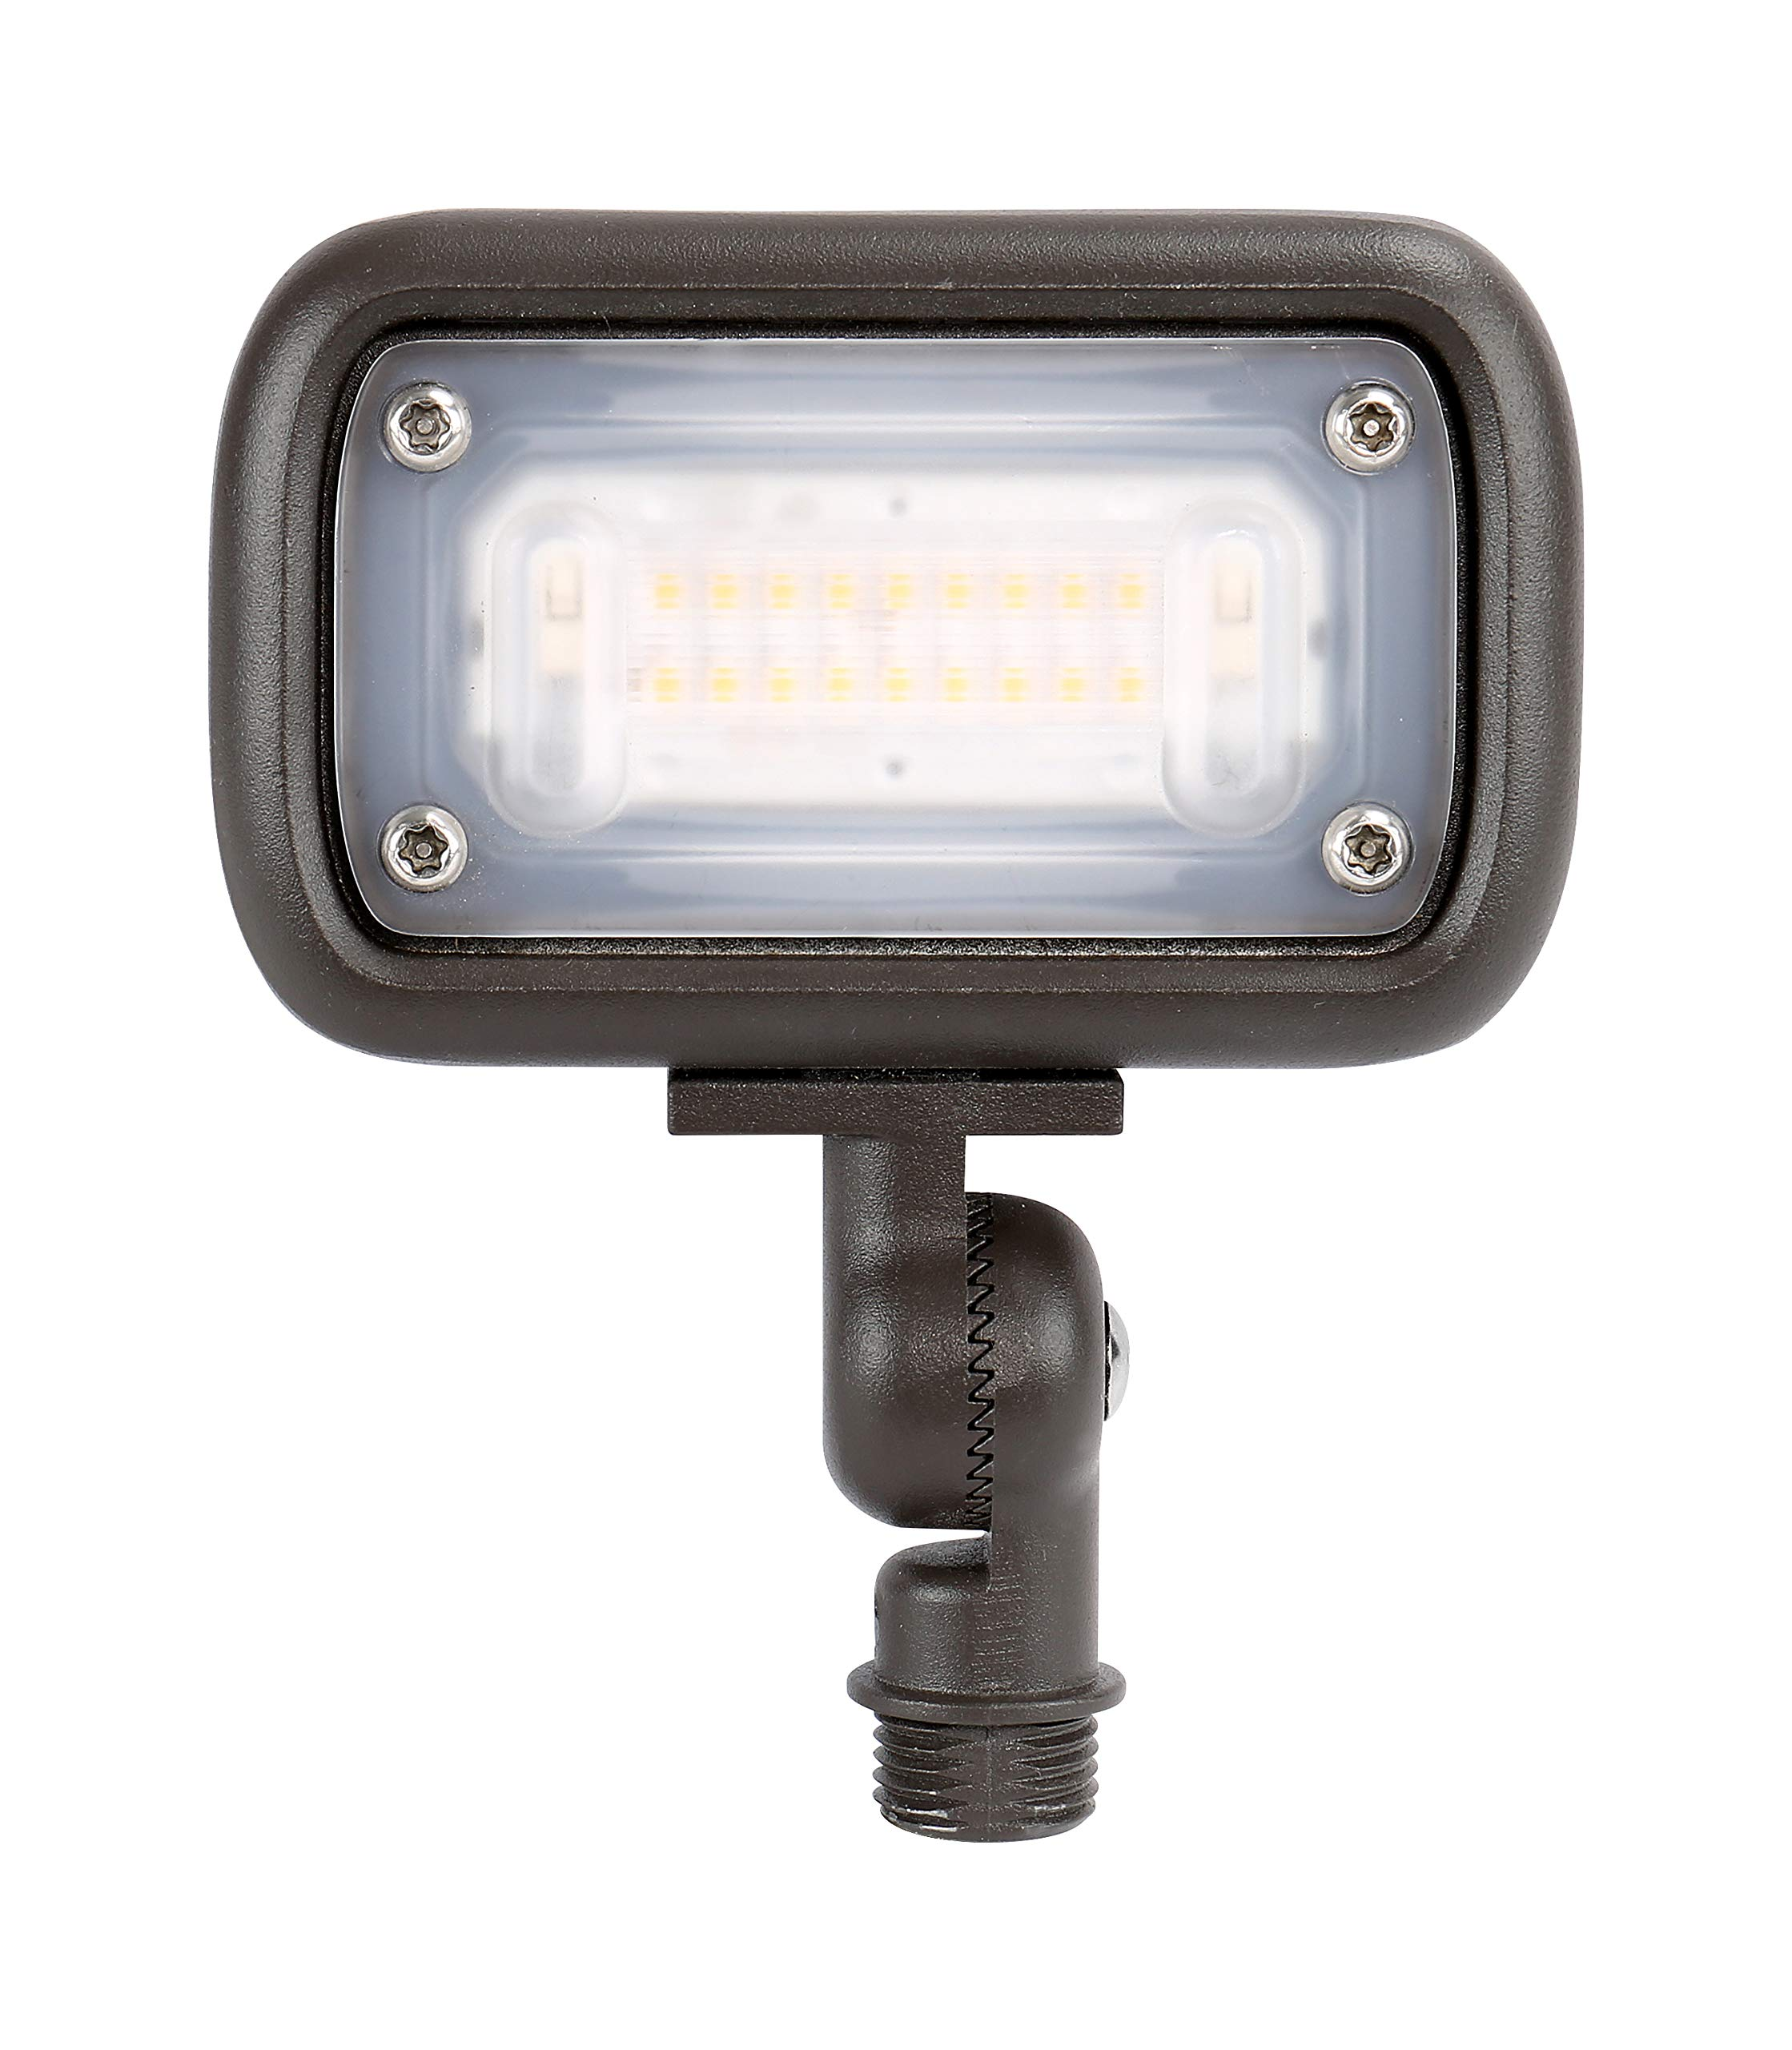 GKOLED 7W Outdoor LED Low Voltage Landscape Lighting Flood Light, 2700K, 550Lumen, 12-24VAC, 1/2'' Adjustable Knuckle Mount